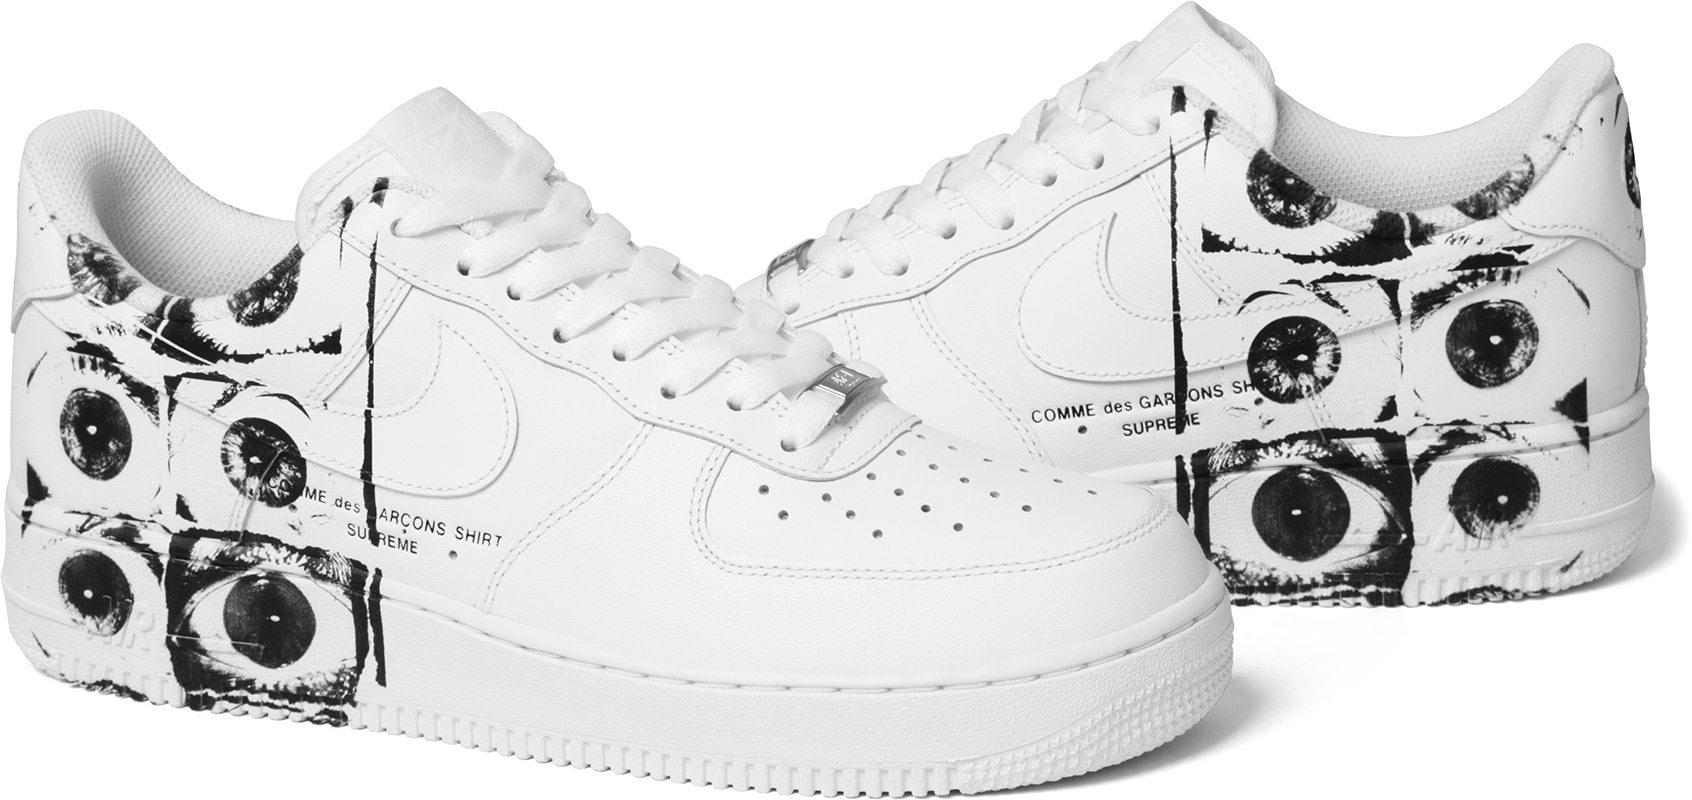 859502f7d0c0 Comme des Garcons SHIRT x Supreme x Nike Air Force 1 Low Launches this Week